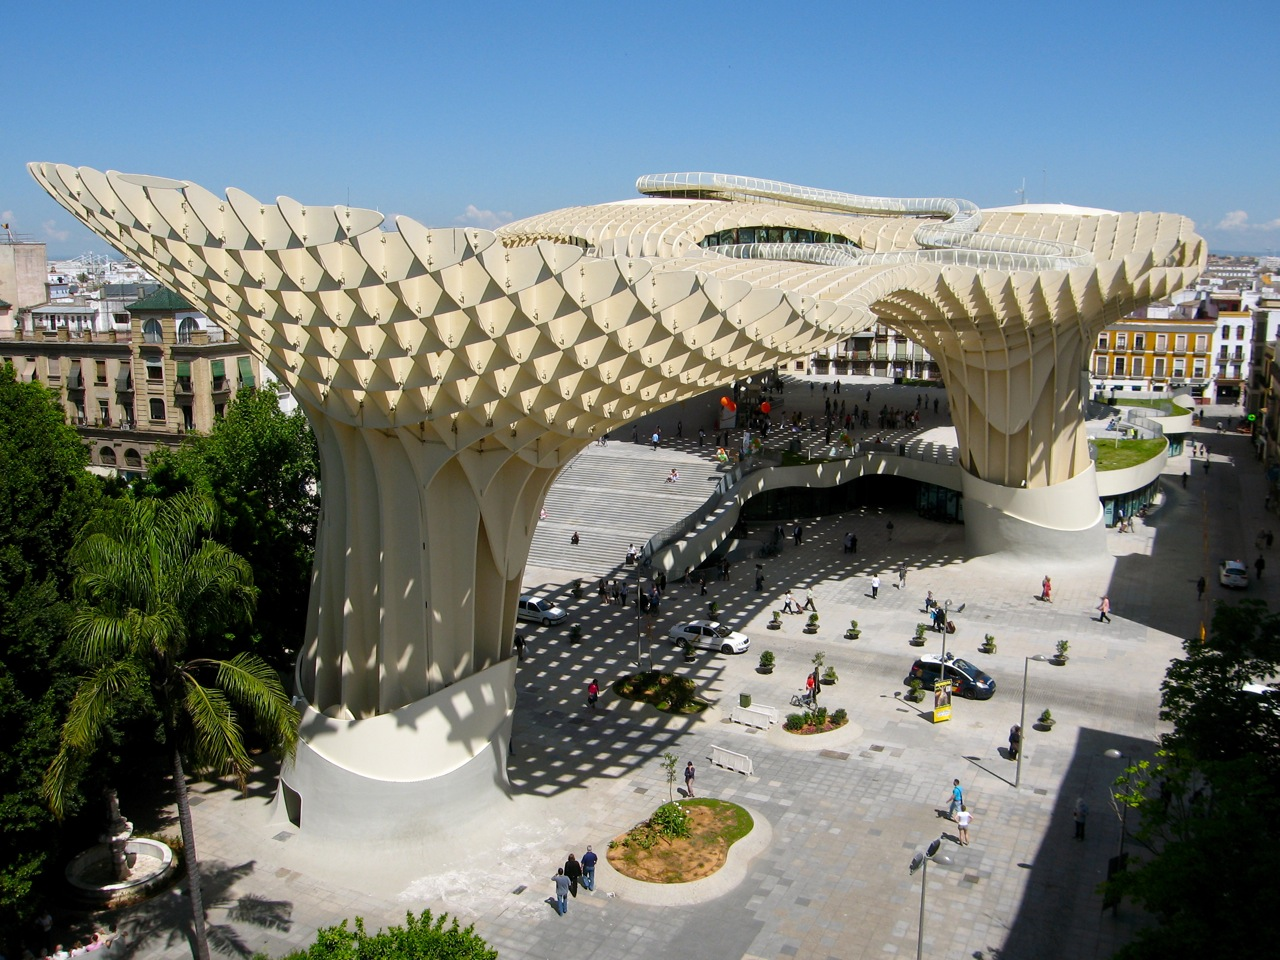 Experimenting in Public Metropol Parasol Seville by